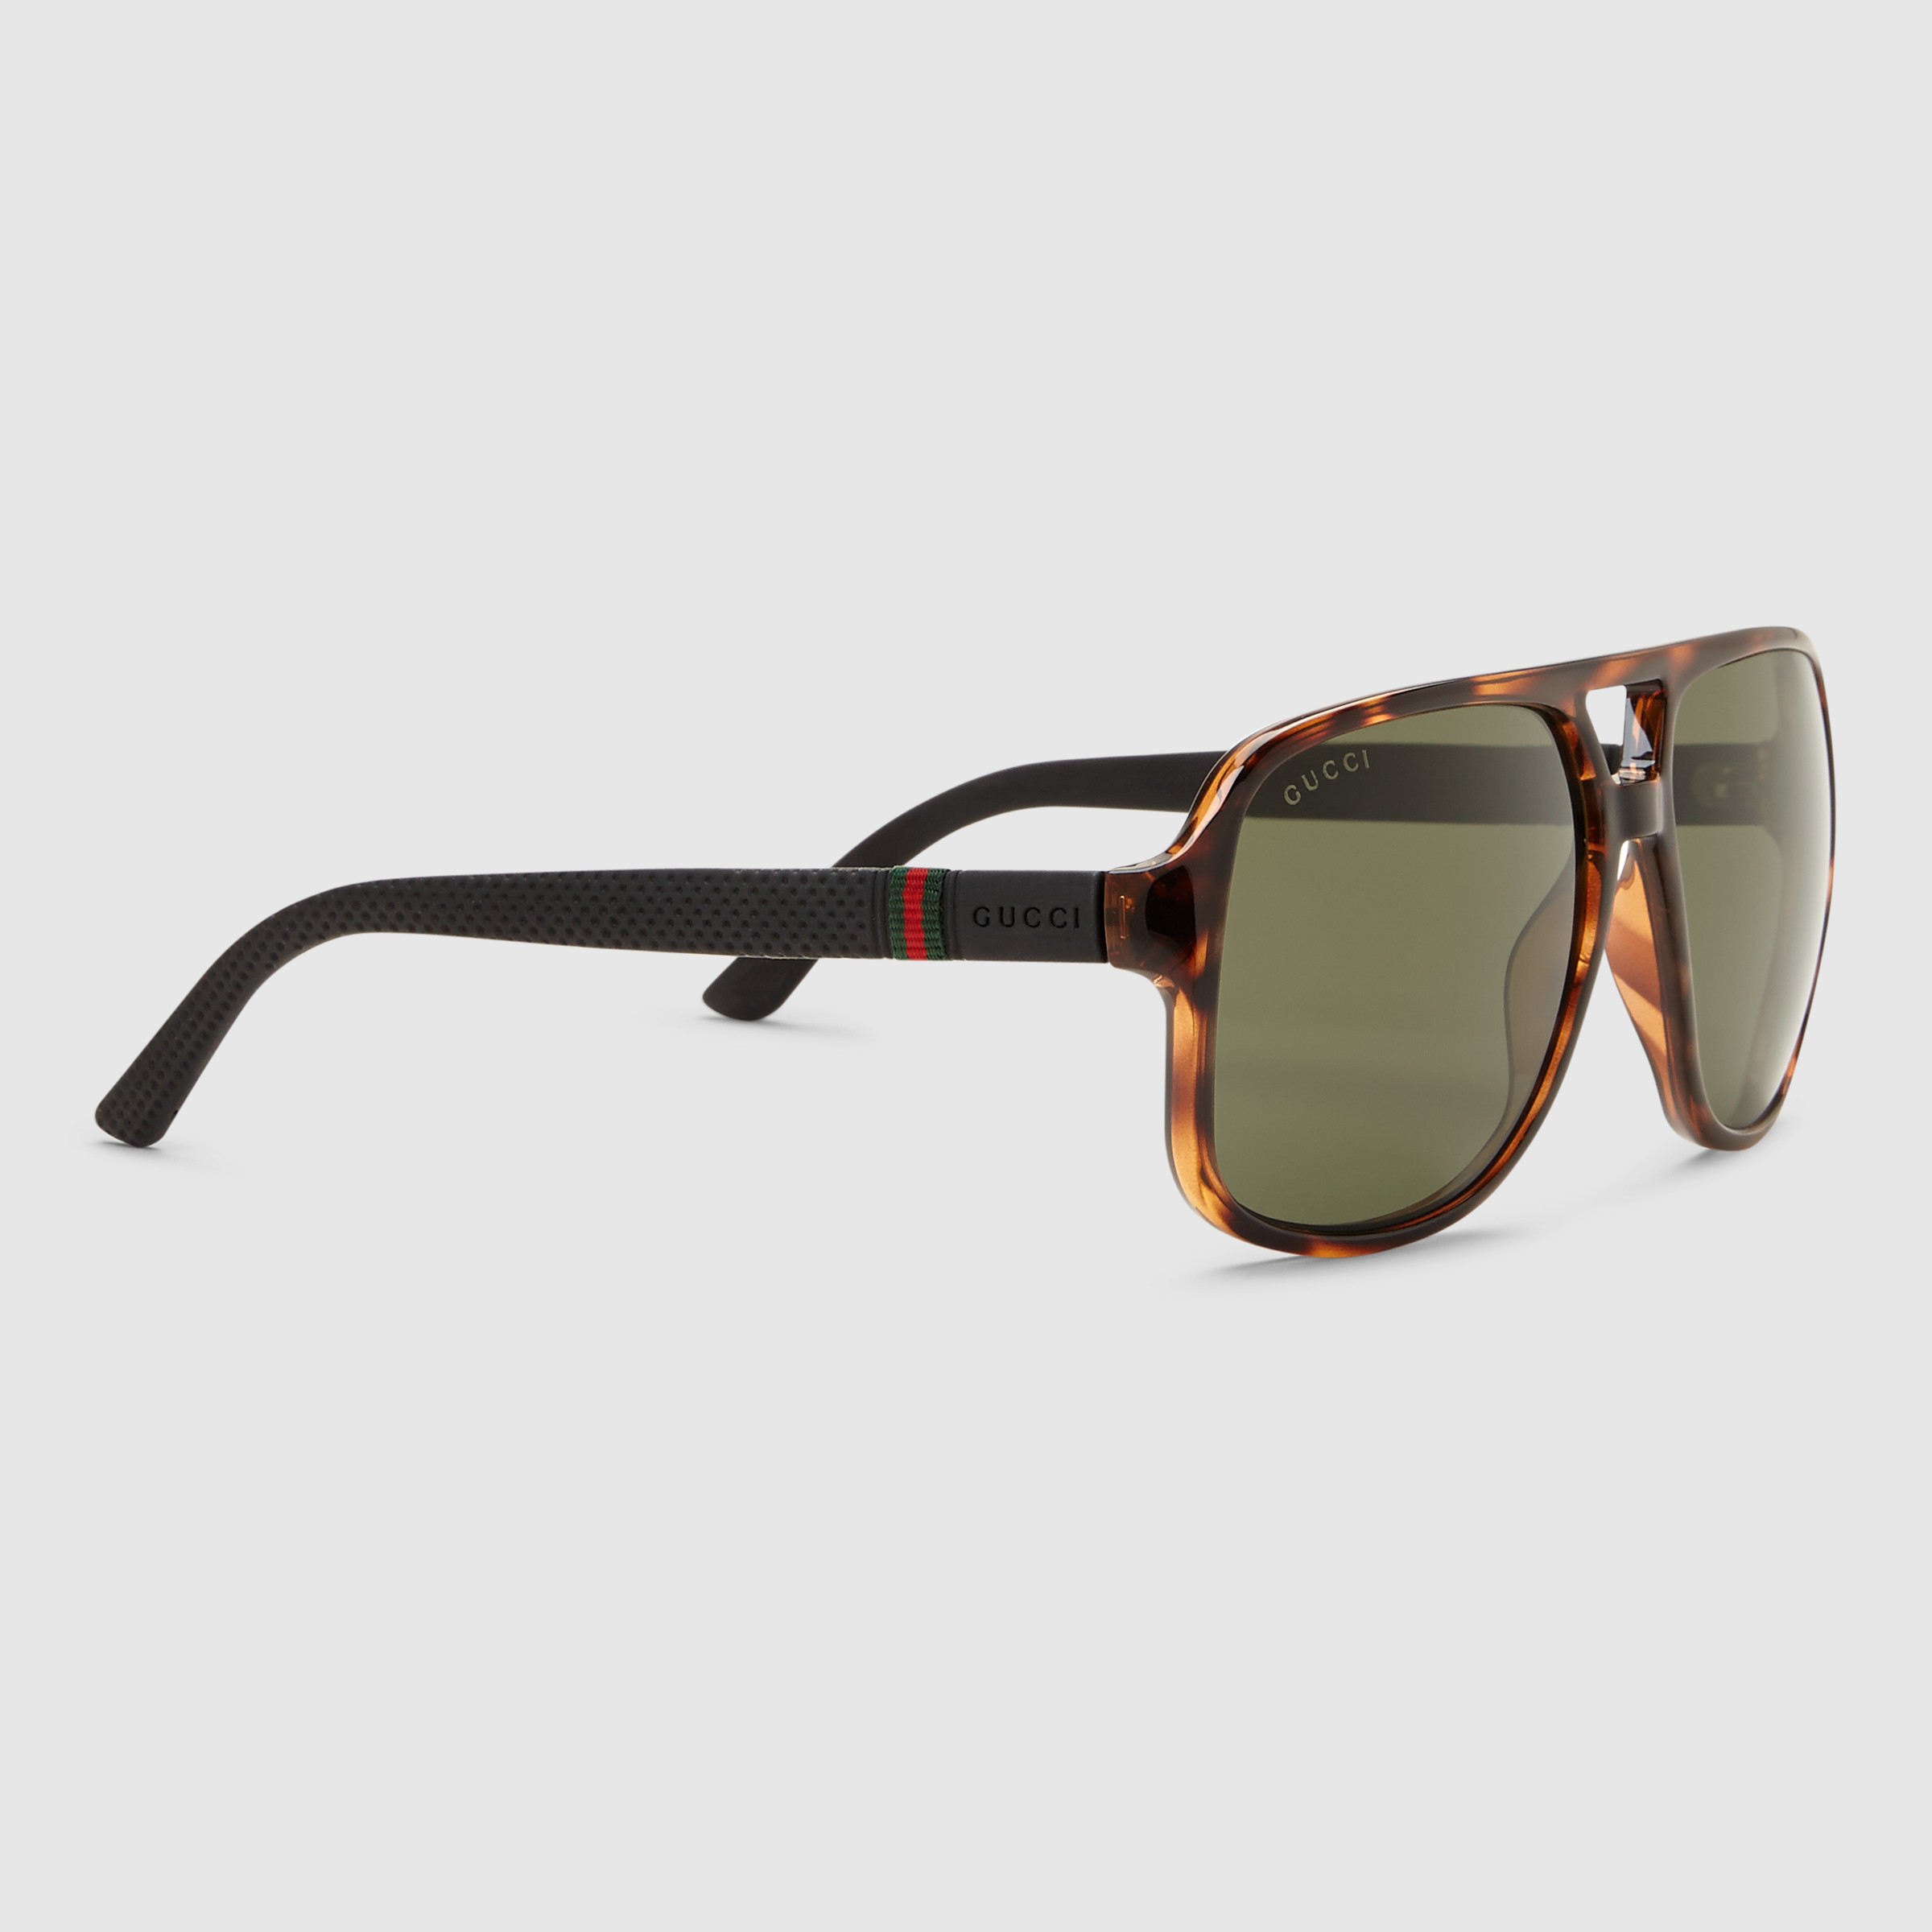 gucci rectangular frame sunglasses with web in black for